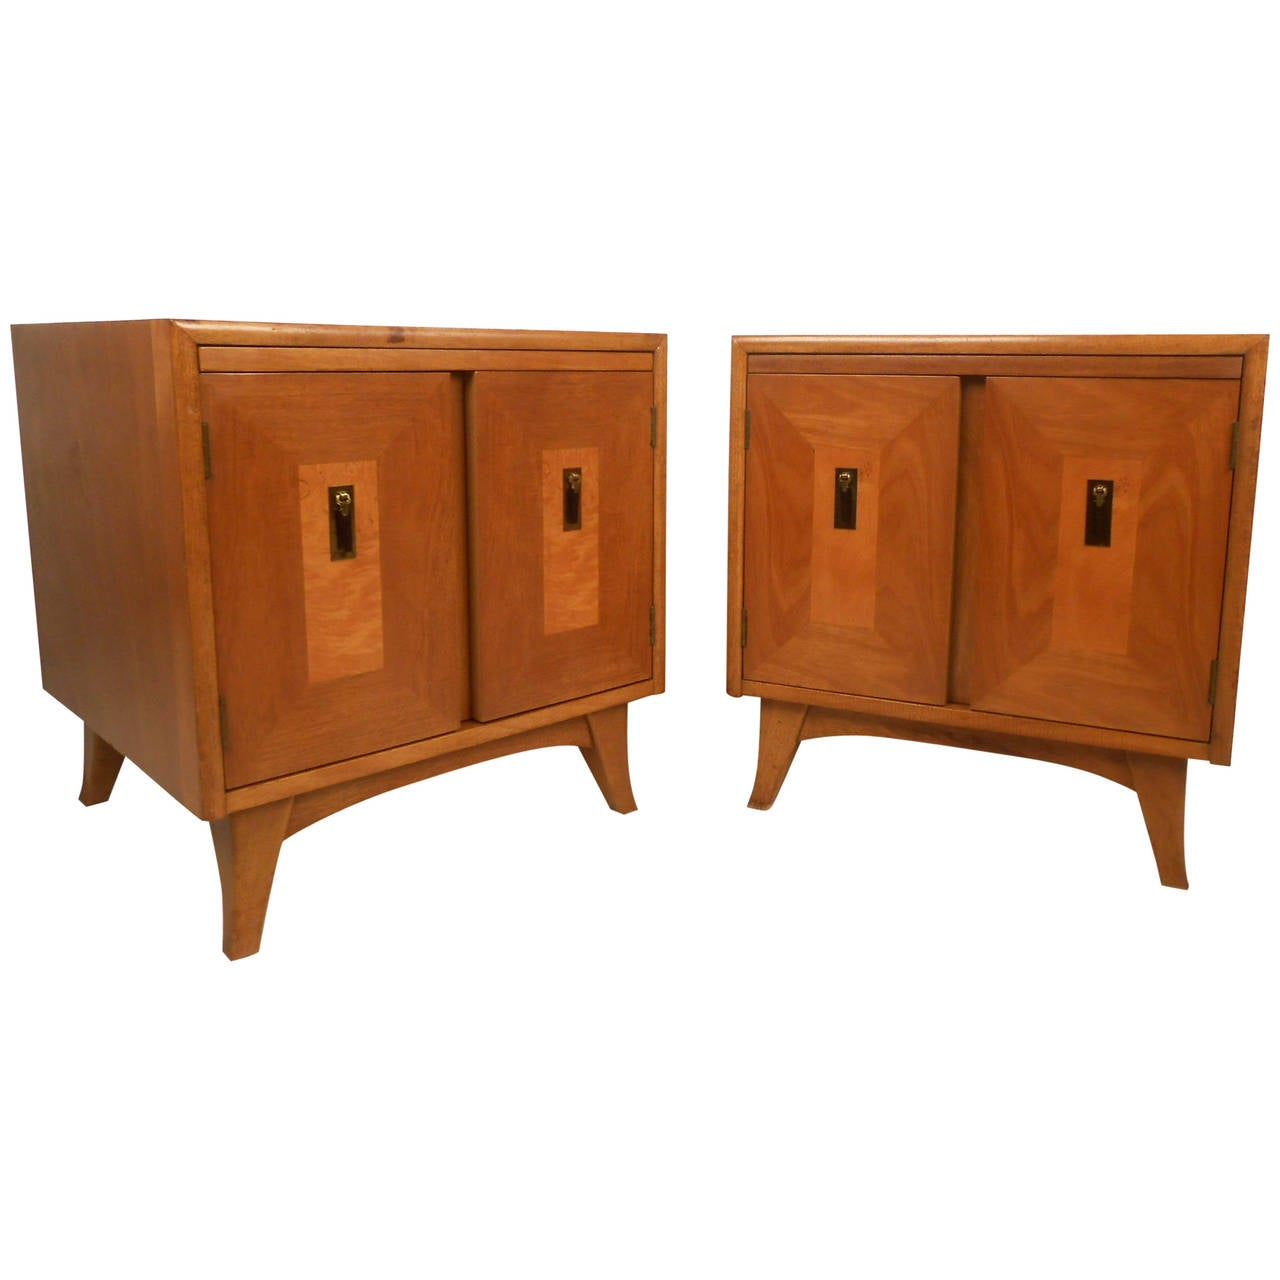 Vintage modern walnut nightstands at 1stdibs for Modern nightstands for sale